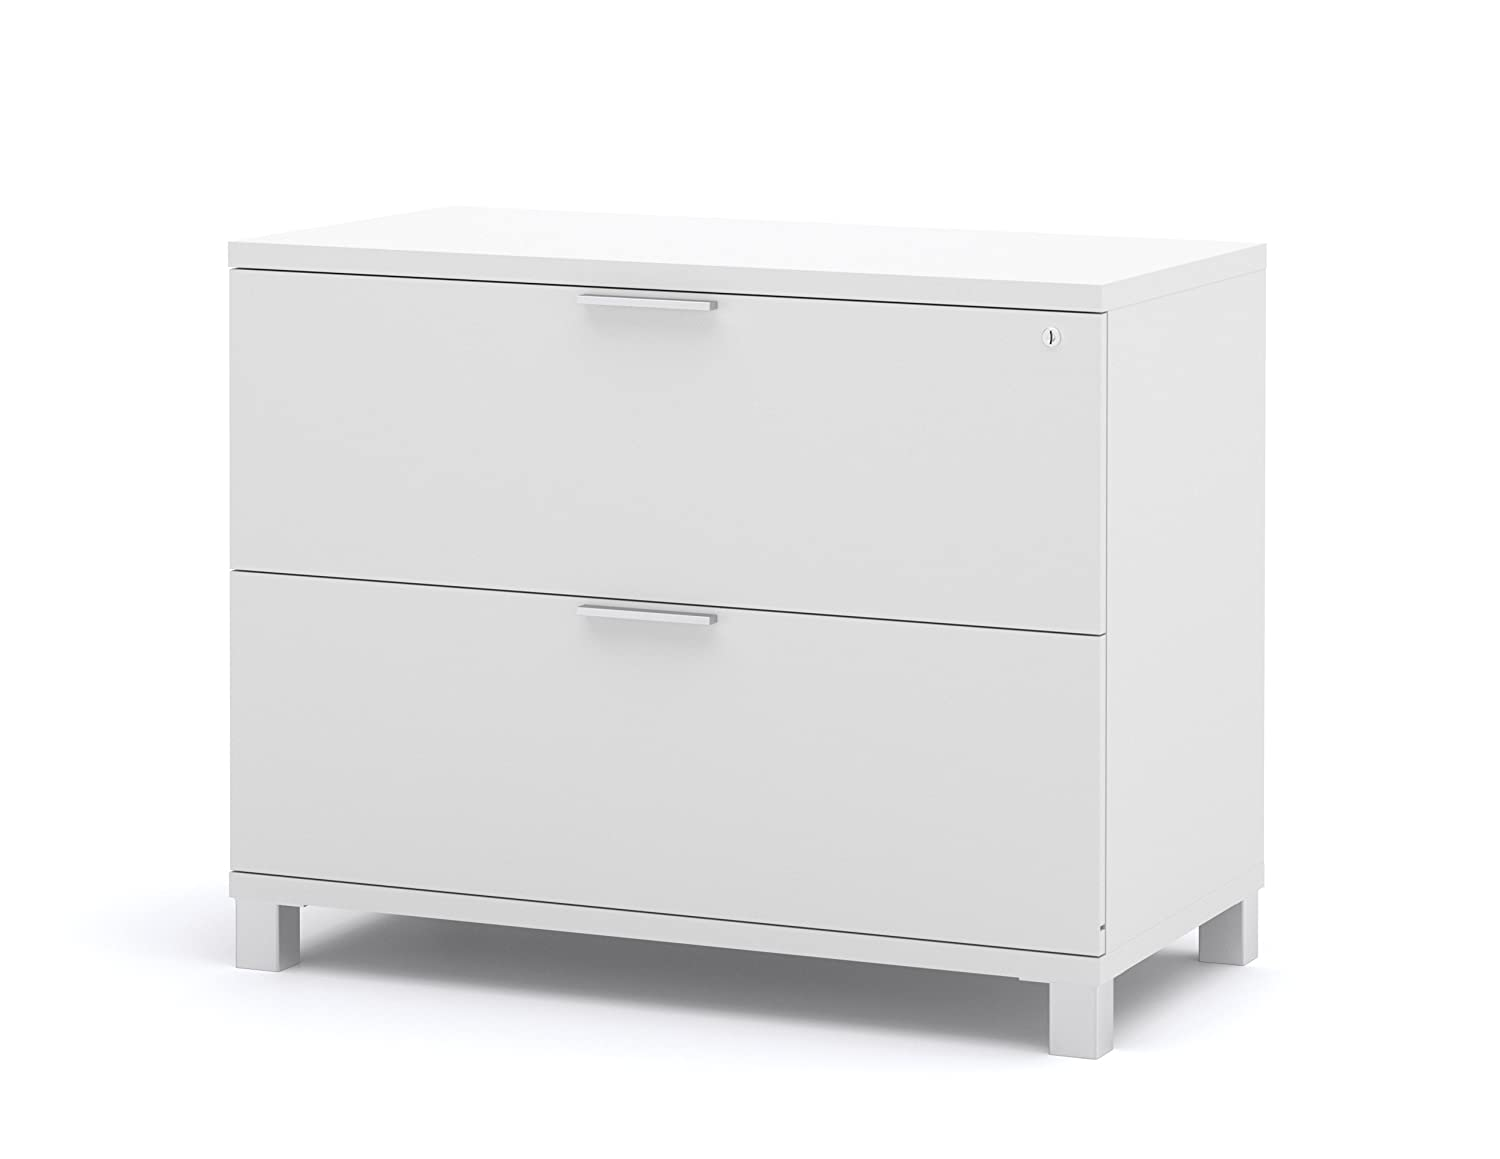 Superb Amazon.com: Bestar Pro Linea Assembled Lateral File Drawer, White: Kitchen  U0026 Dining